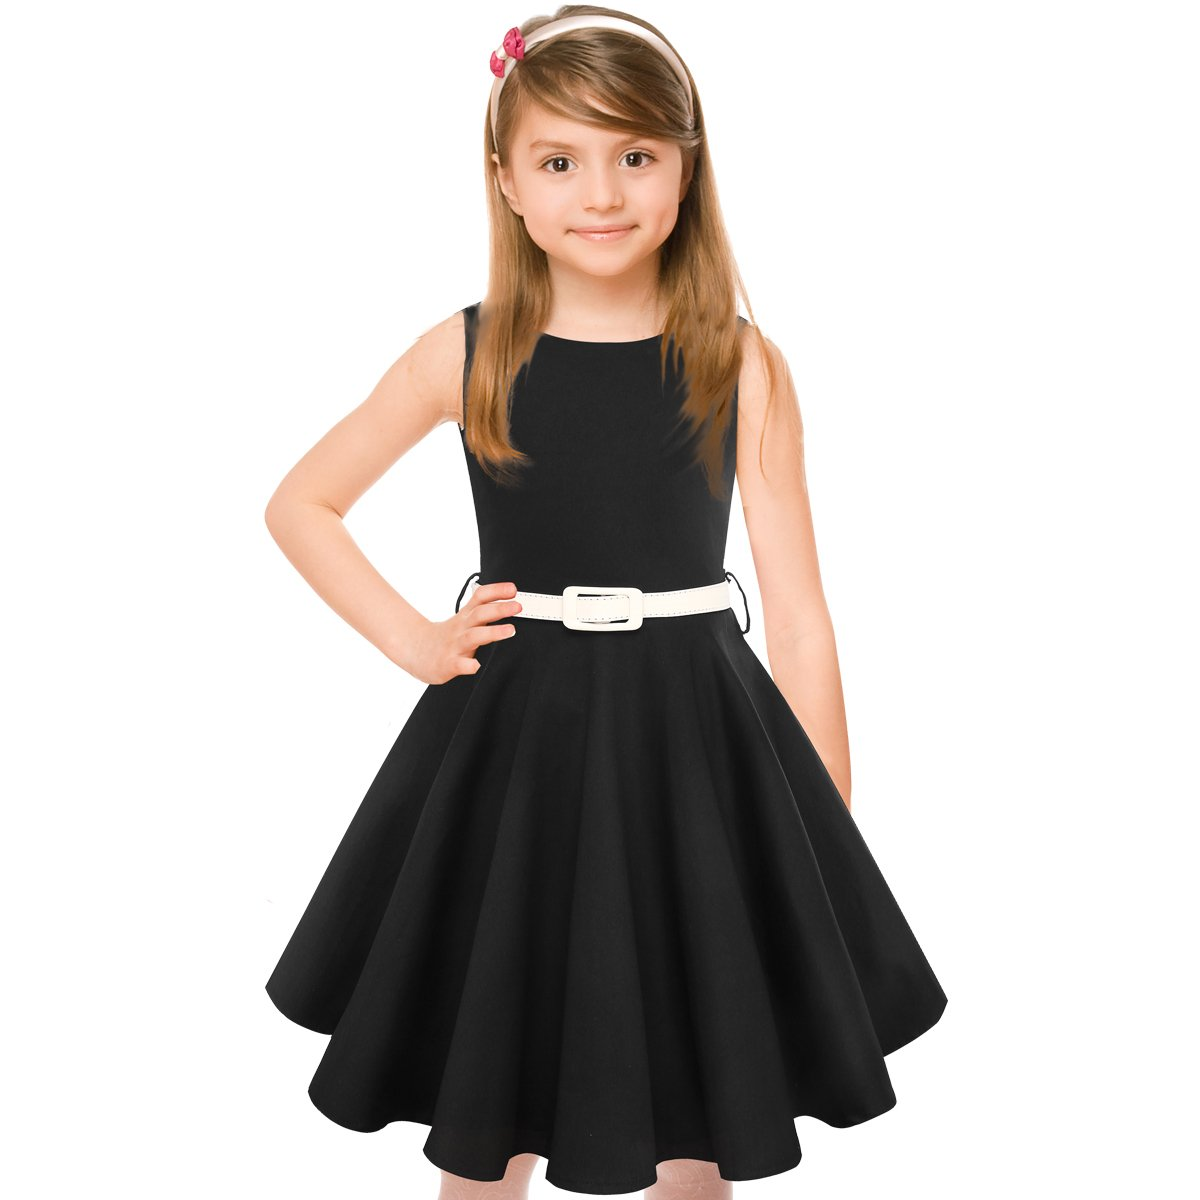 Girls 50s Vintage Swing Rockabilly Retro Sleeveless Party Dress for Occasion Black